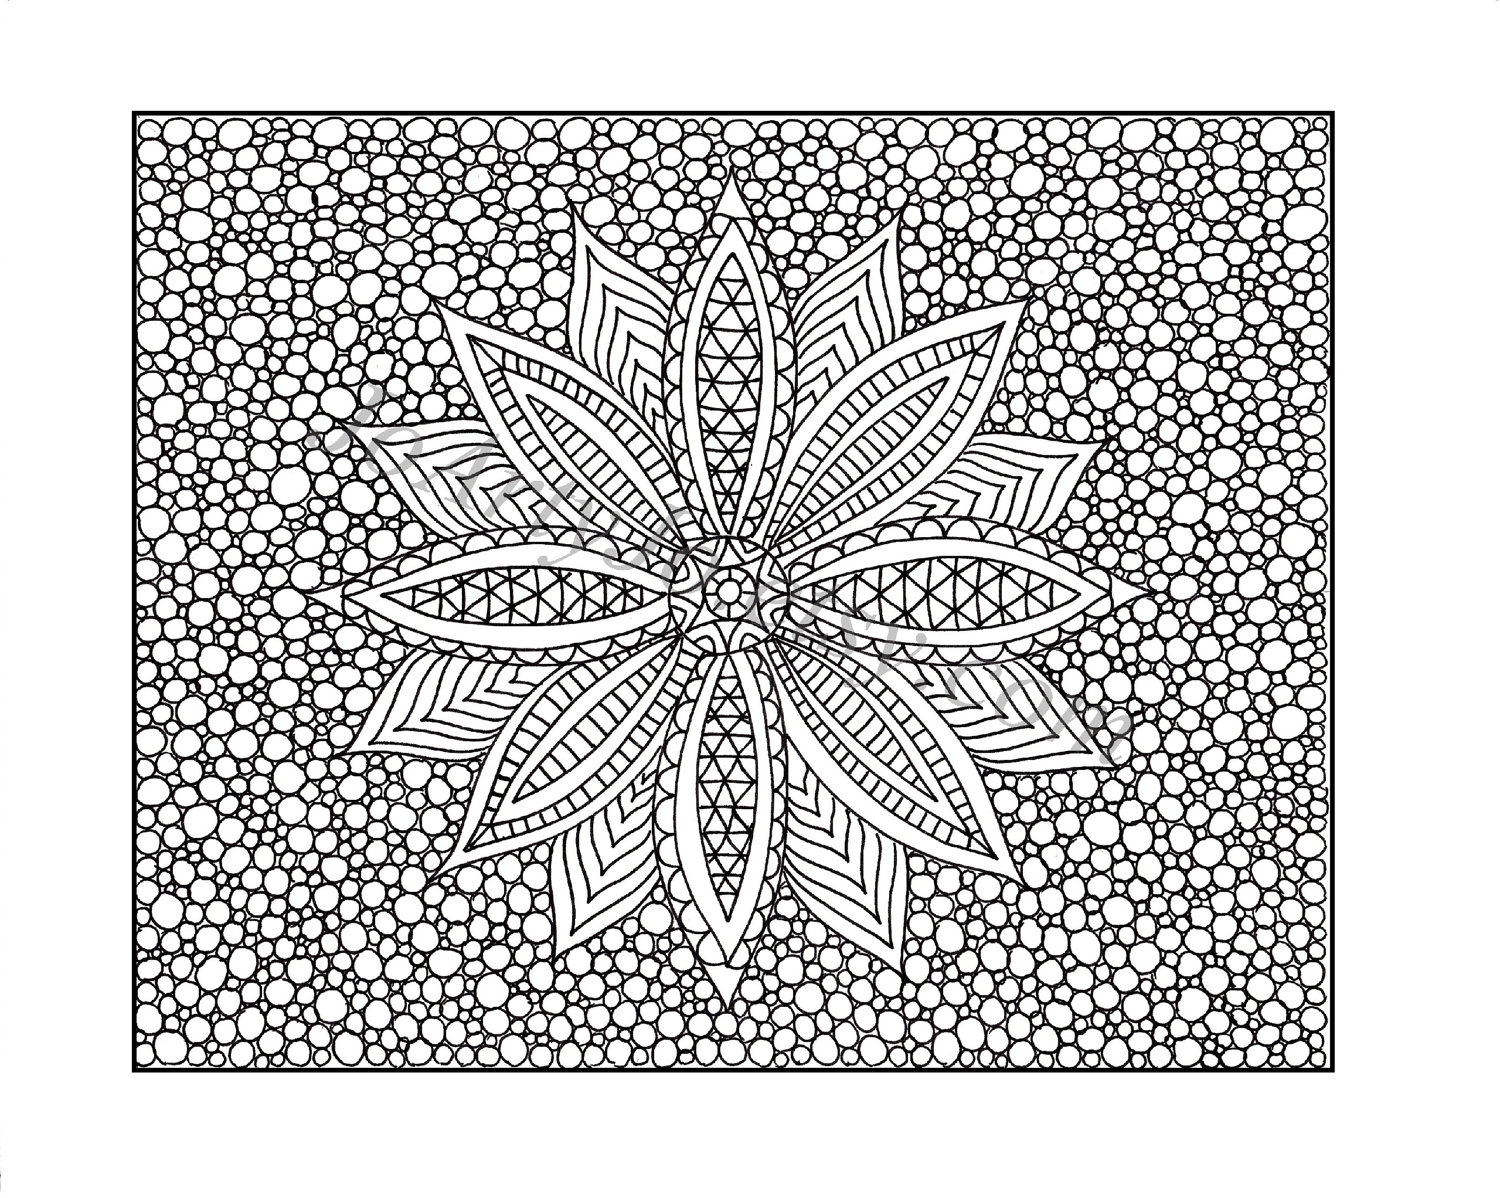 1500x1198 Zentangle Patterns Coloring Pages, Pen Illustration Printable